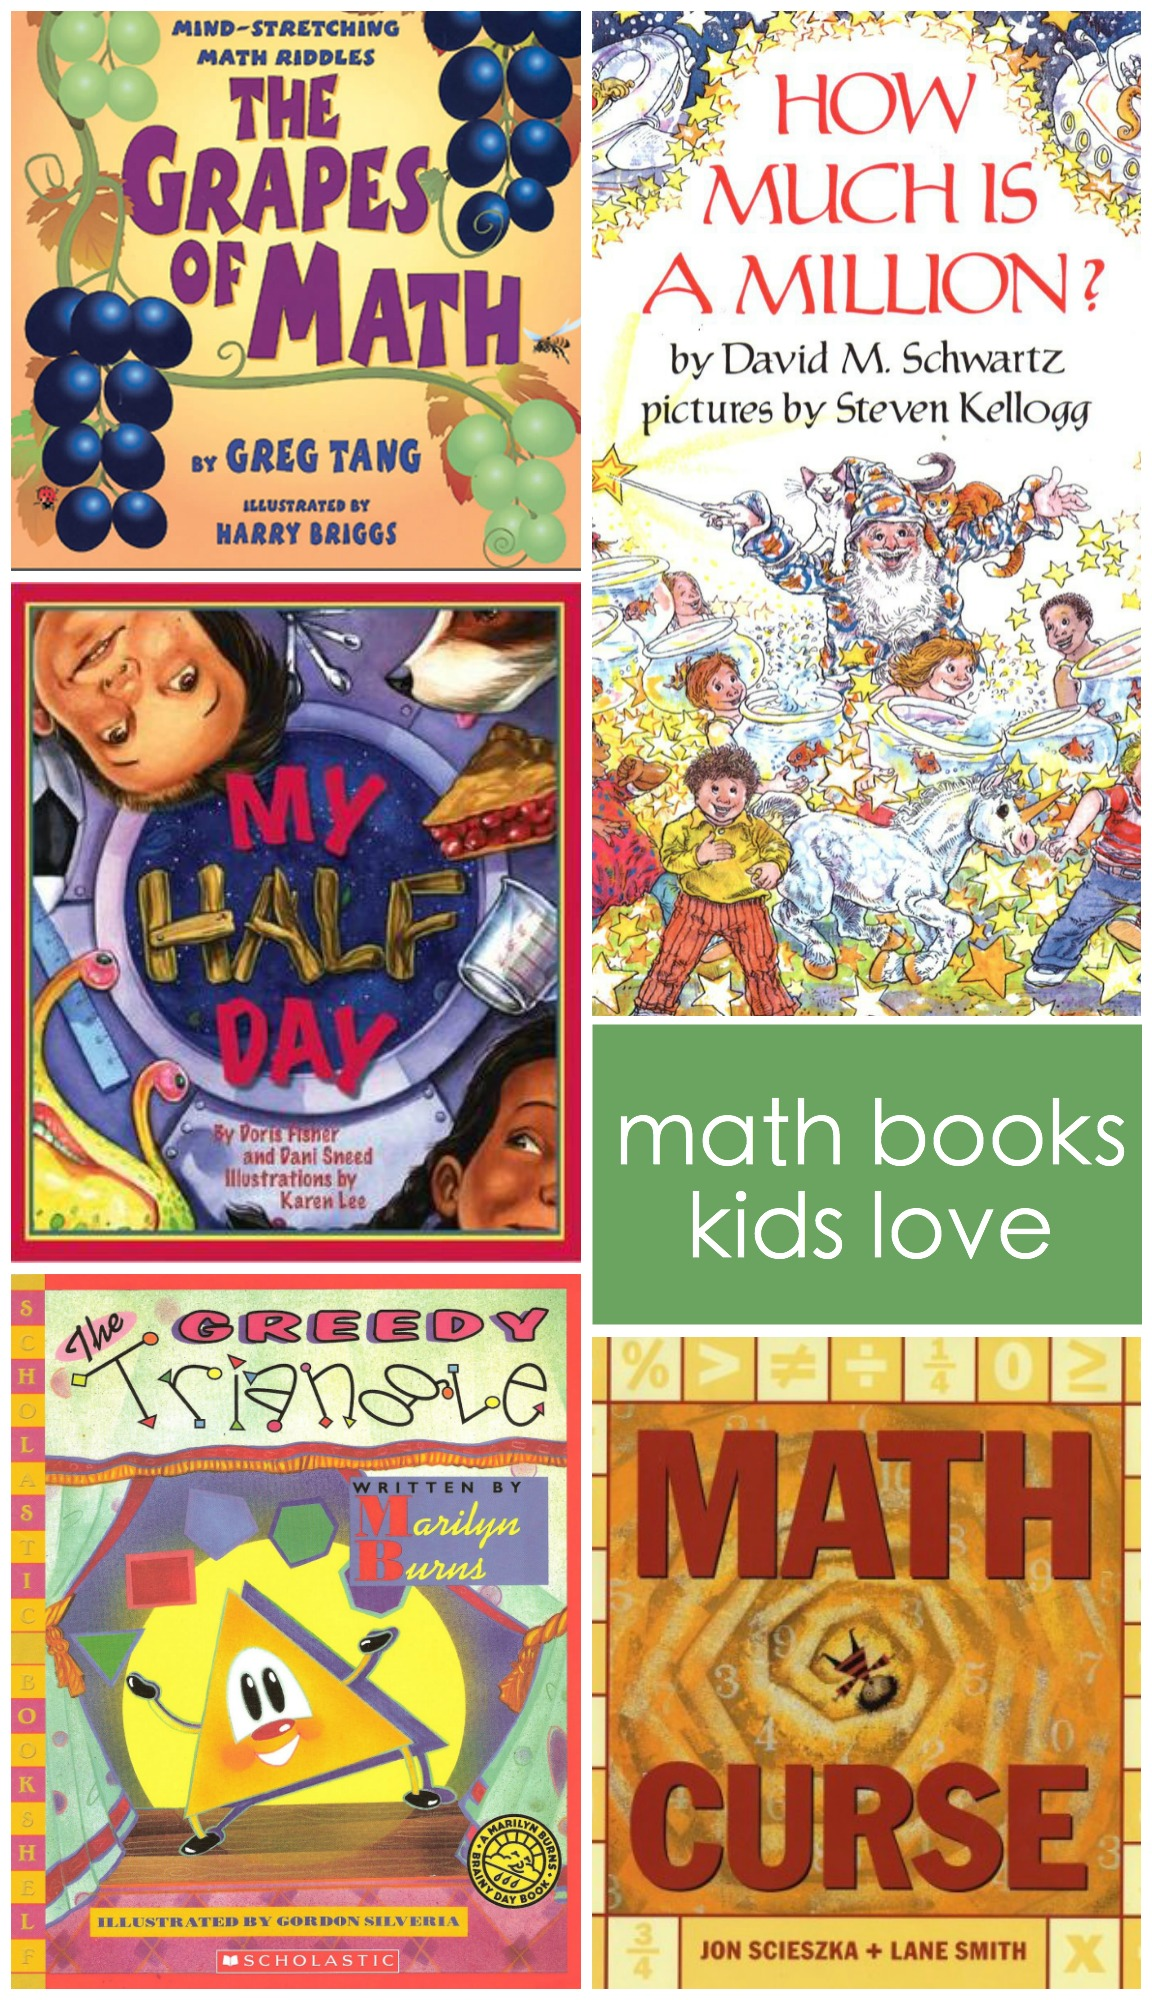 math books kids love